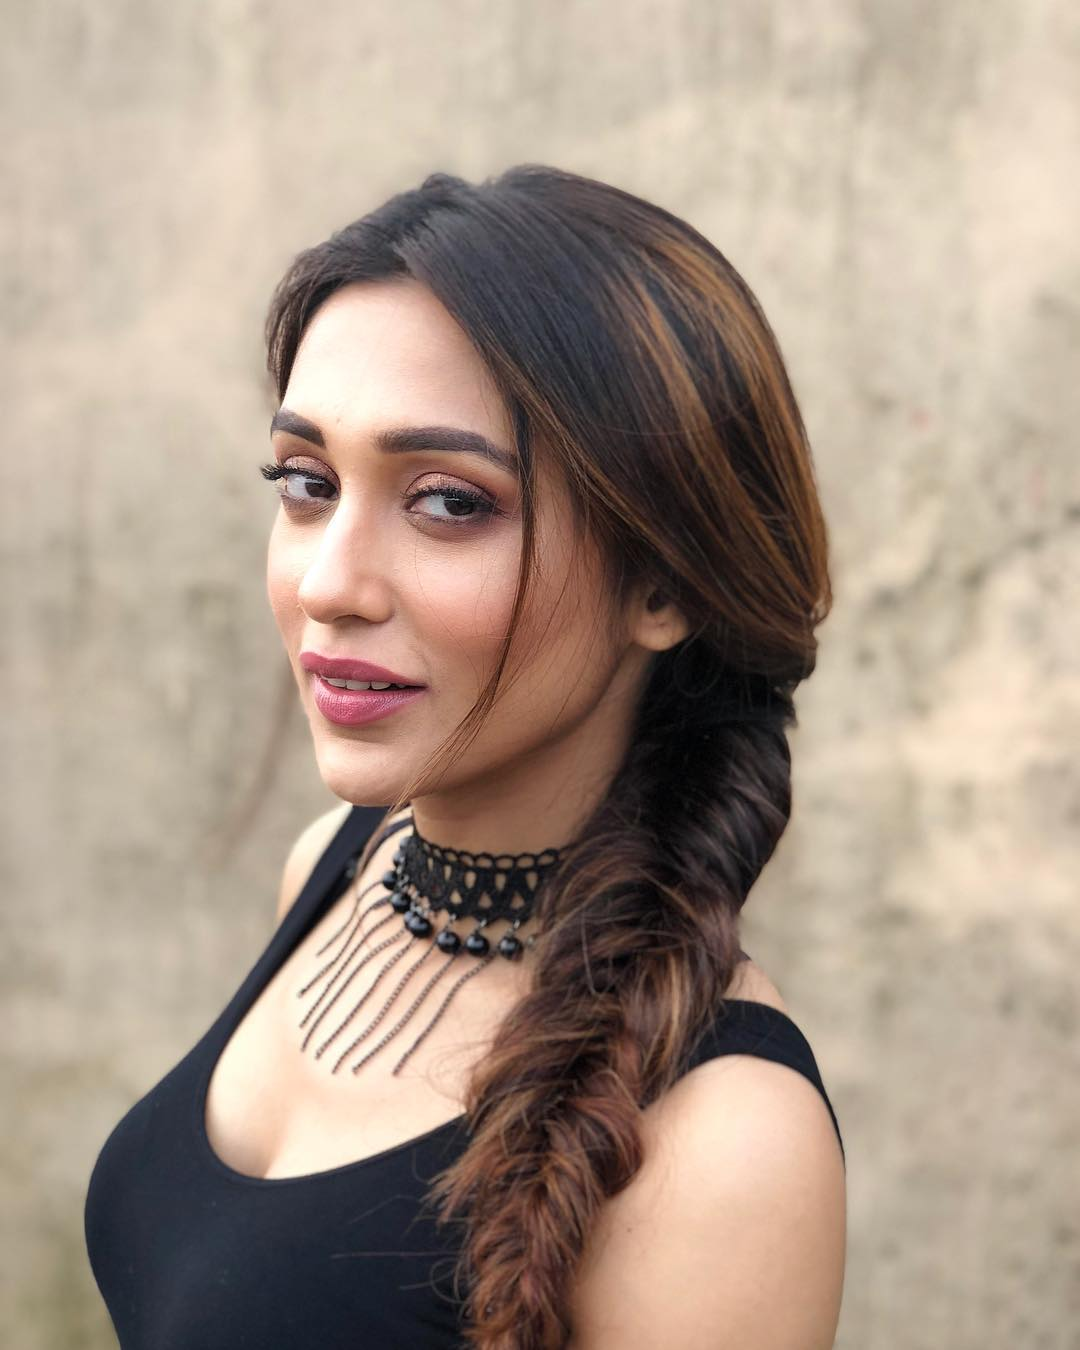 Discussion on this topic: Zoe Tapper, mimi-chakraborty/